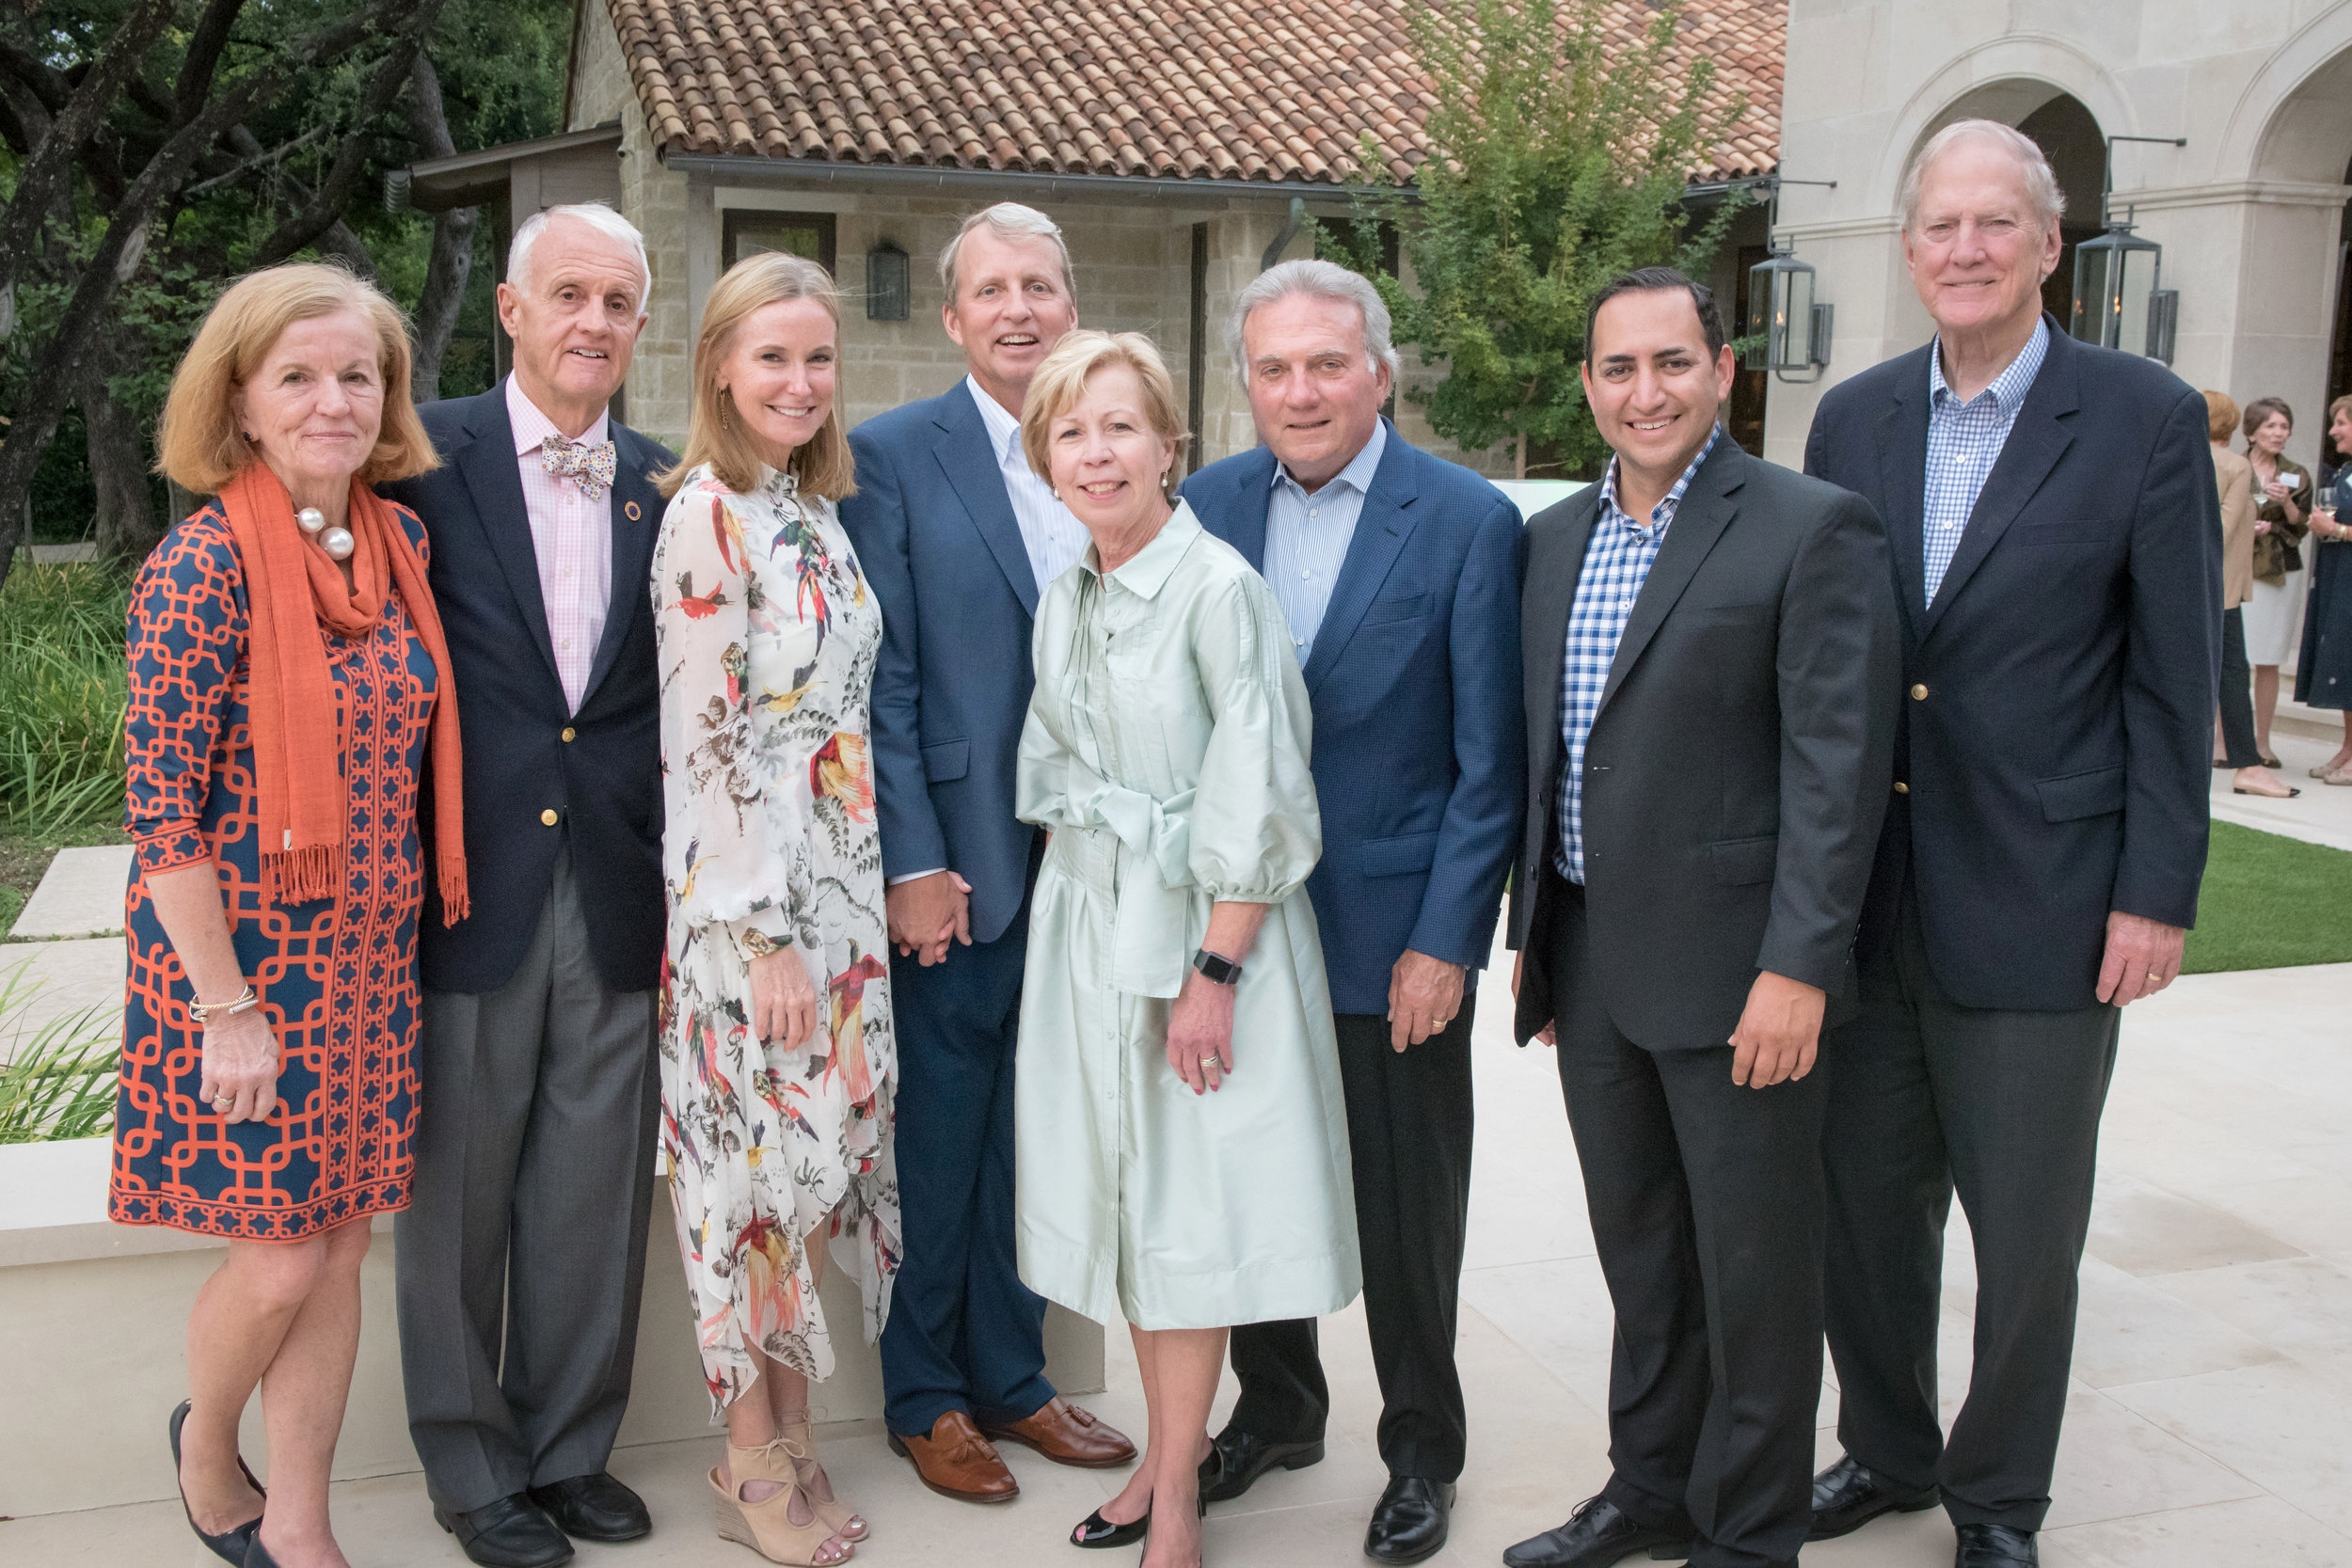 Jubilee's 20th Anniversary Gala Honorary Co-Chairs Peggy and Mark Anschutz with Chairs Lydia and Bill Addy joined current Board Chair Jeff Rice, past Board Chair Tom Harbison, CEO Ben Leal, and founding Board Chair Walt Humann at the Sponsor Soiree hosted by Monica and Joe Eastin.